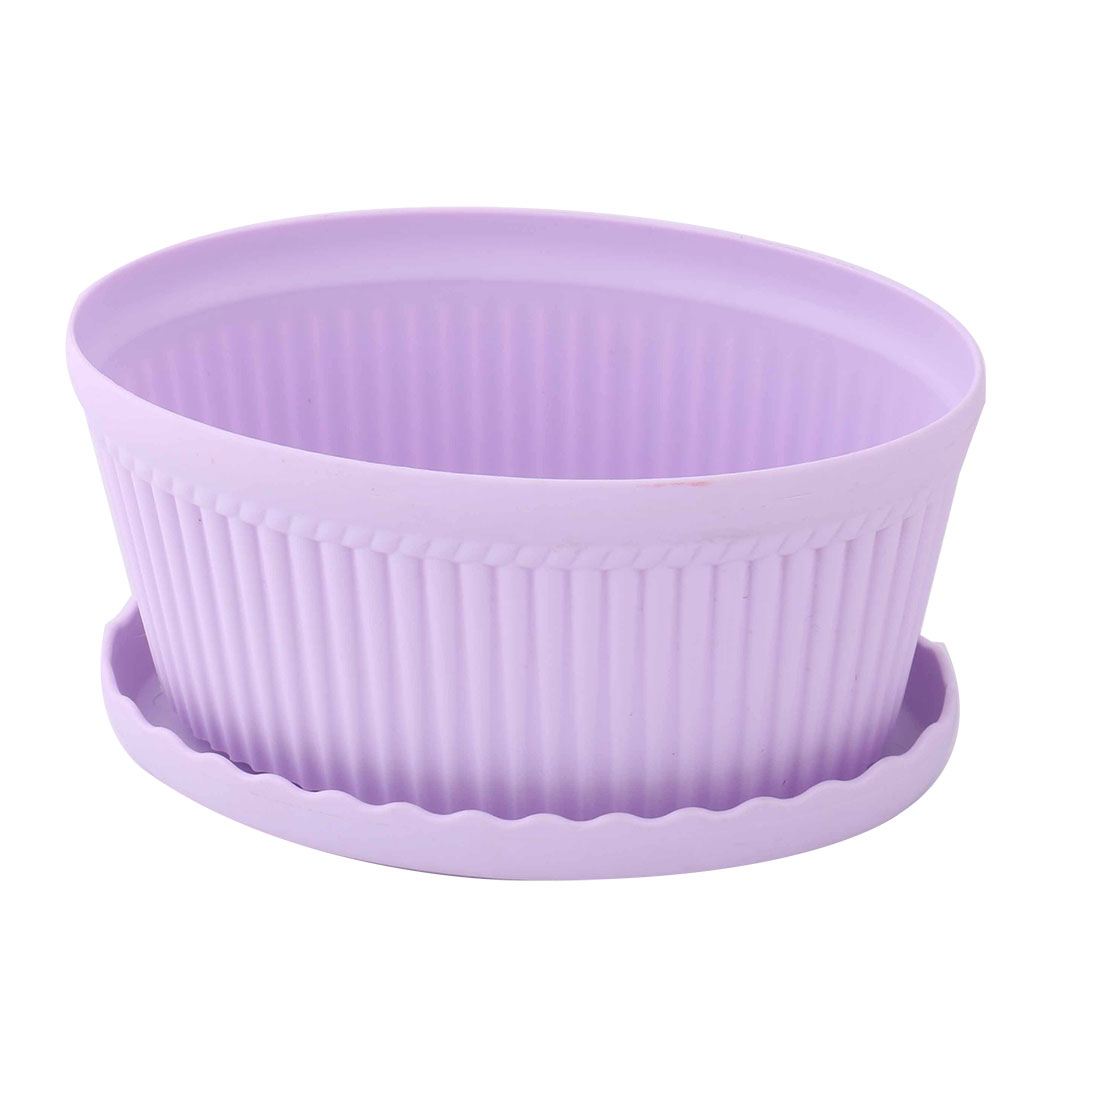 Plastic Oval Flower Cactus Plant Pot Tray Holder Container Ornament Light Purple